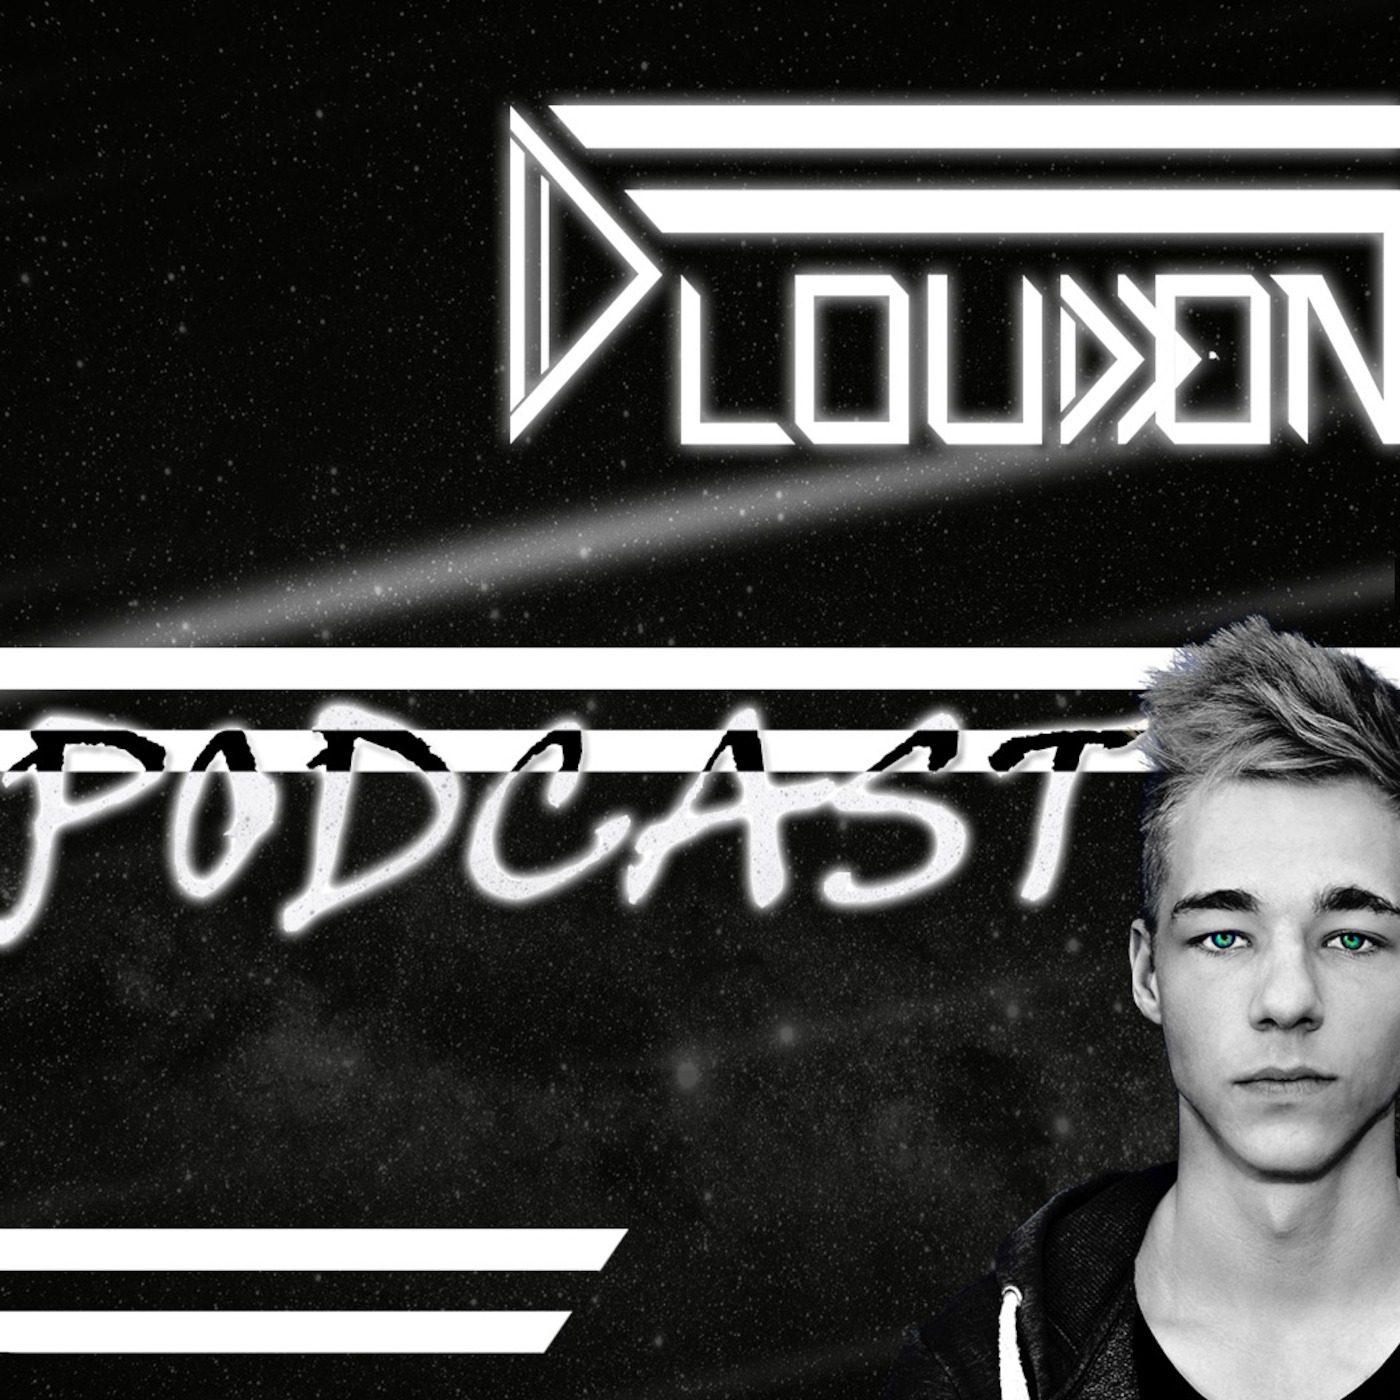 D Loudon´s Podcast